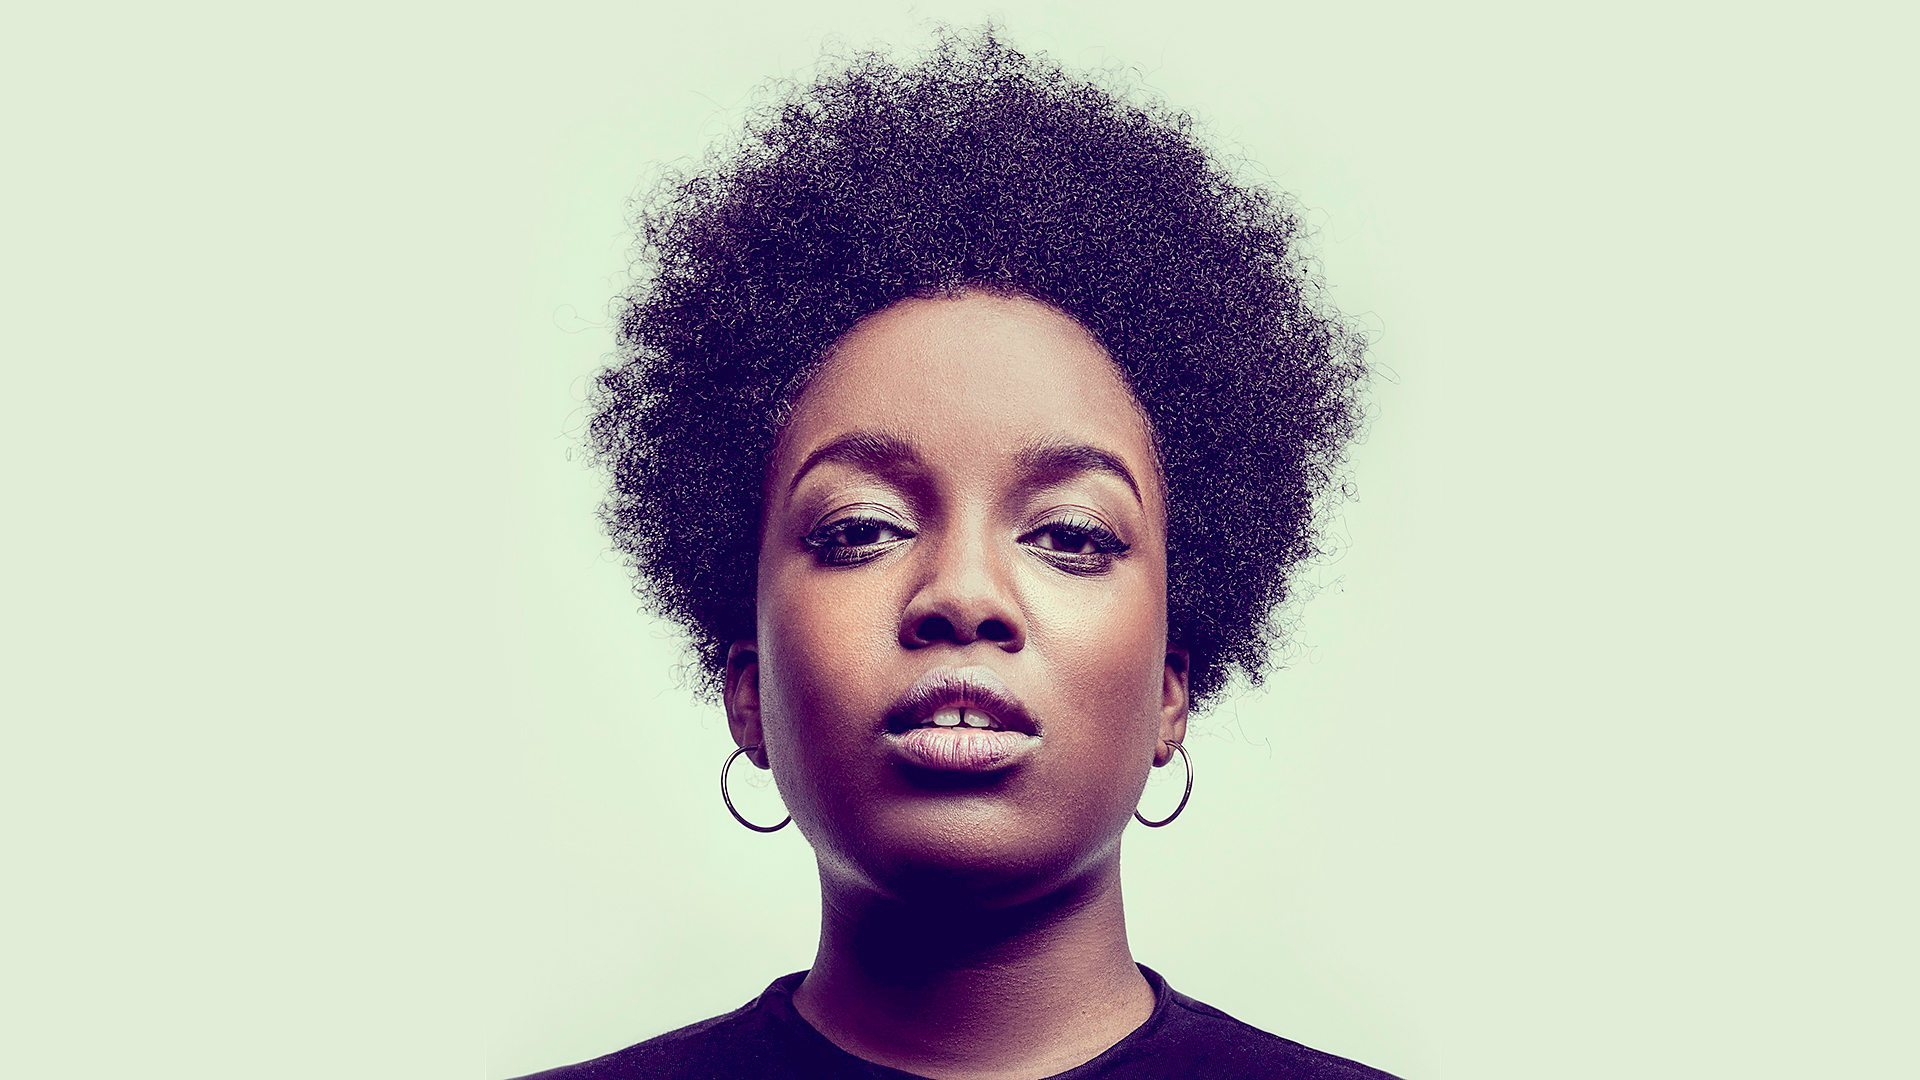 Comics Reginald D Hunter, Phil Wang, Lolly Adefope, Twayna Mayne and Andrew Maxwell perform on a barge for one night only